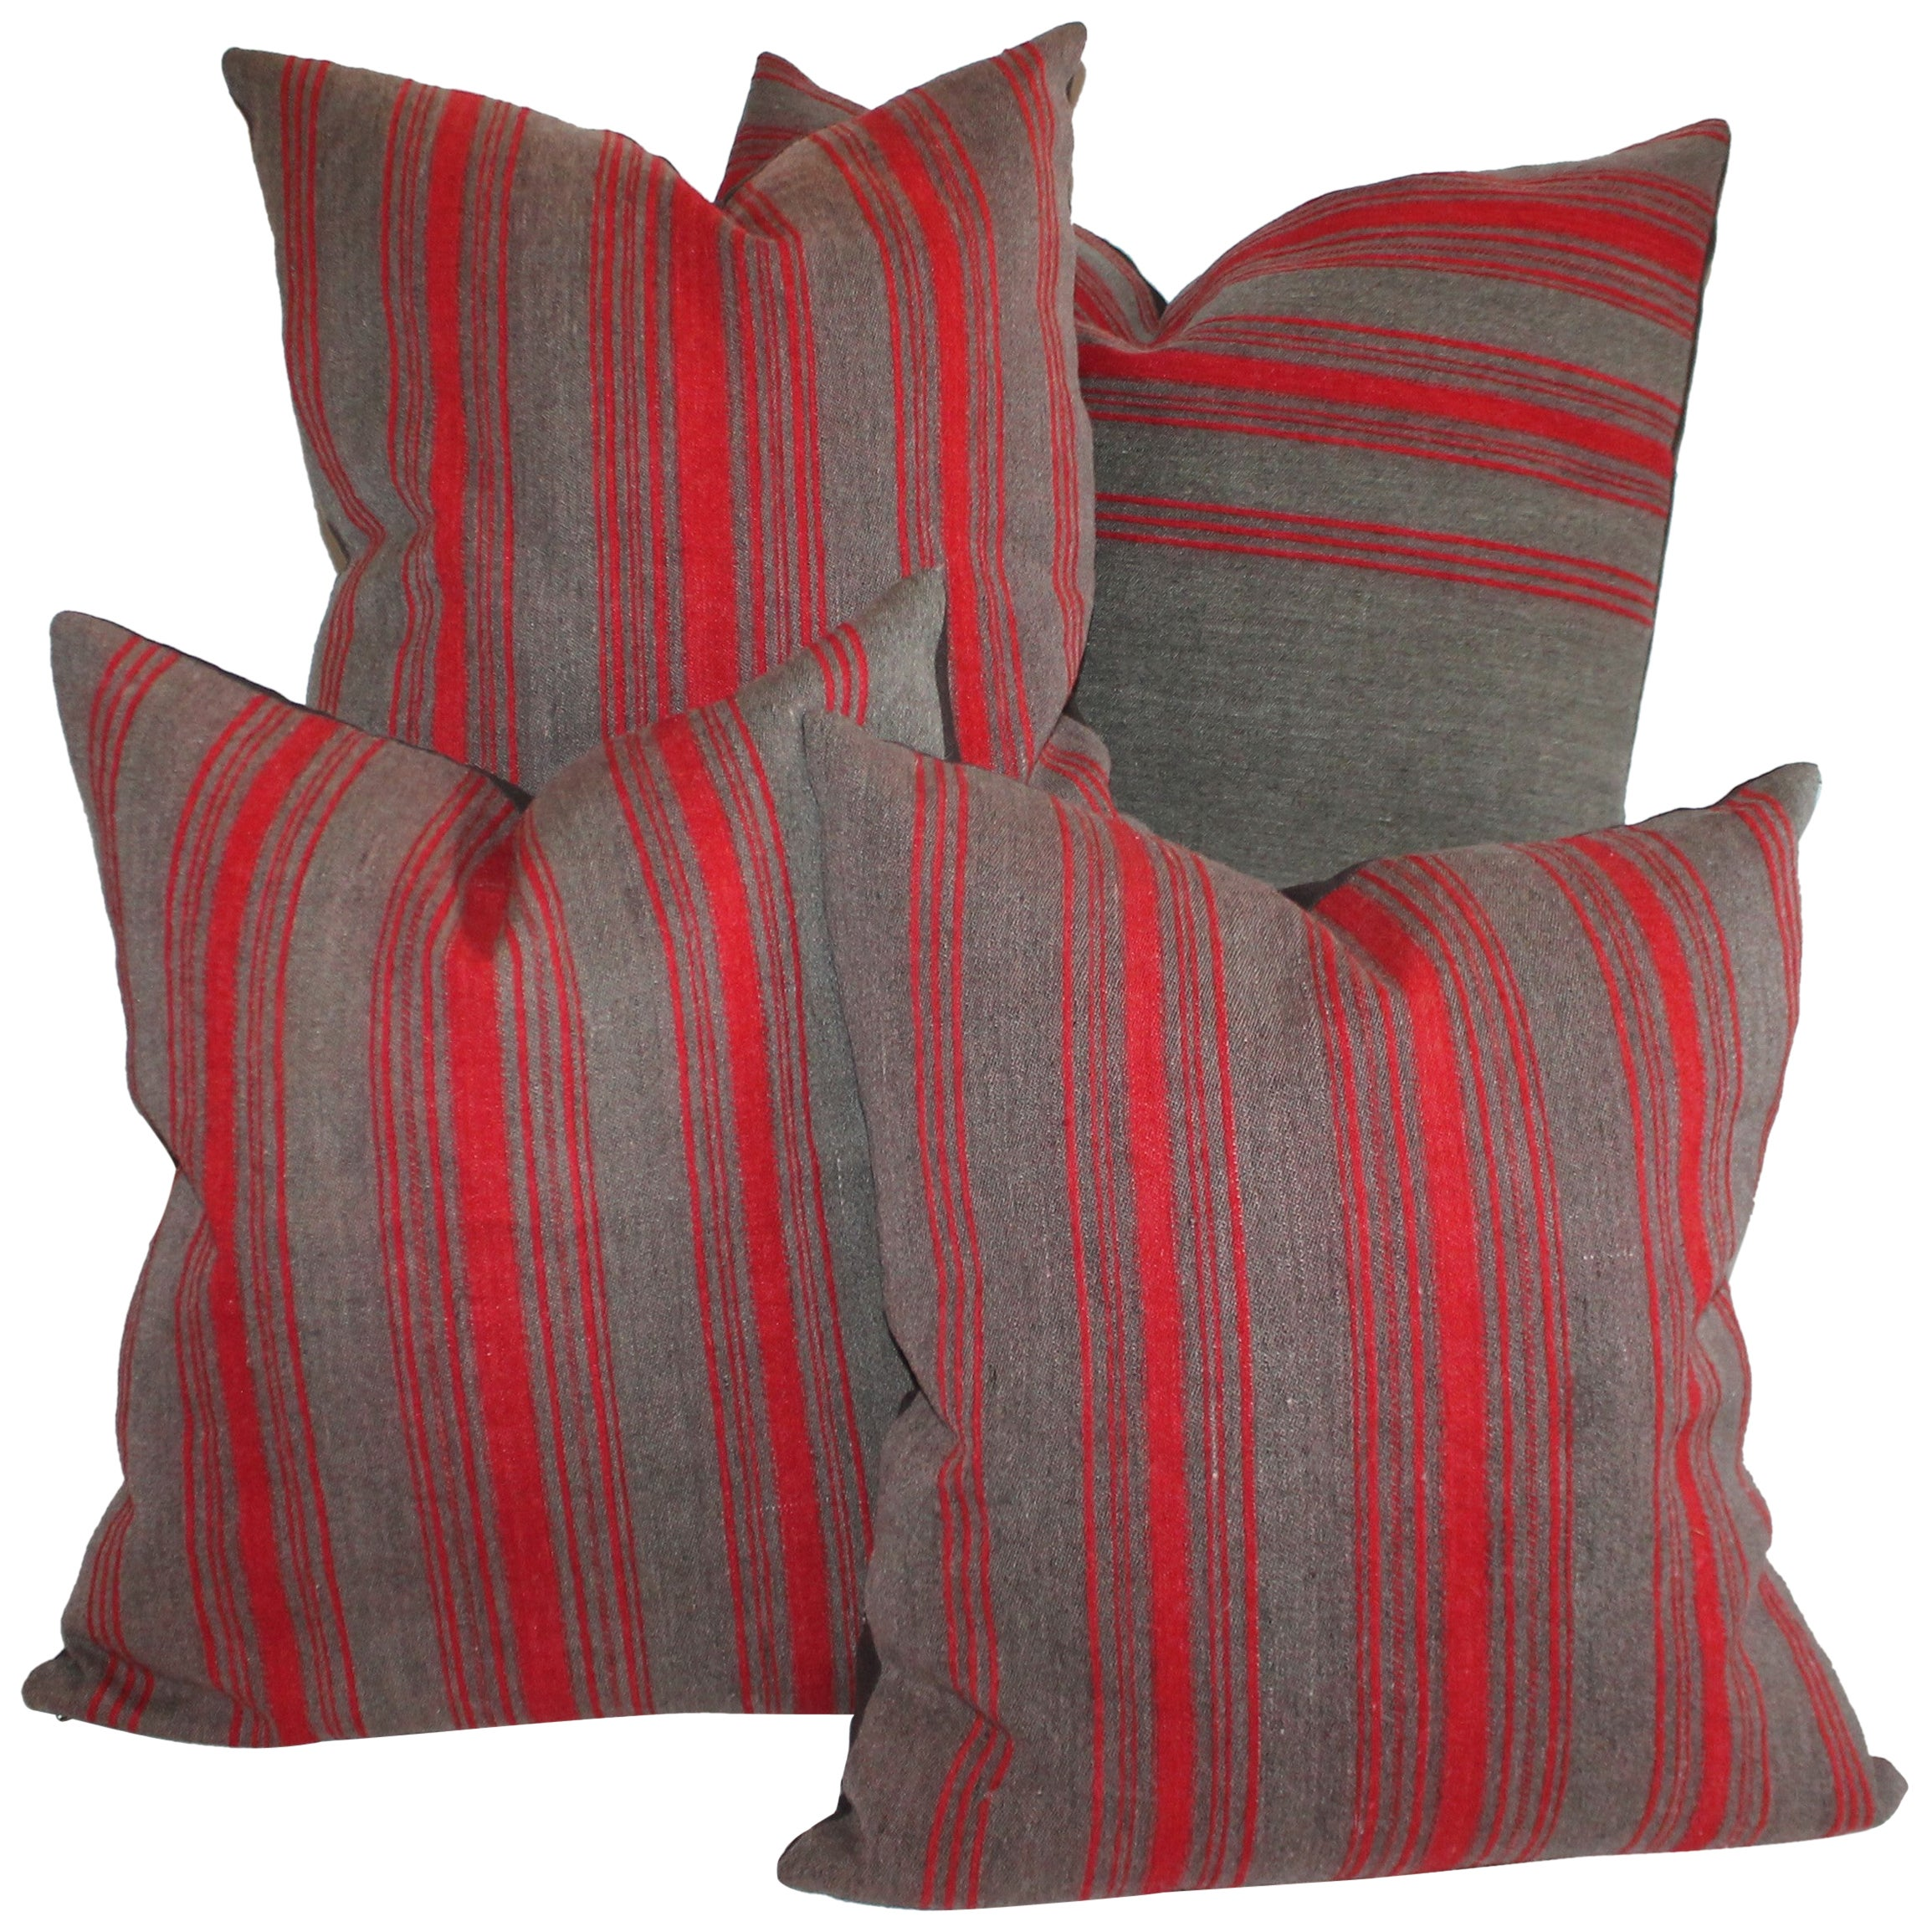 Collection of Red and Grey 19th Century Ticking Pillows